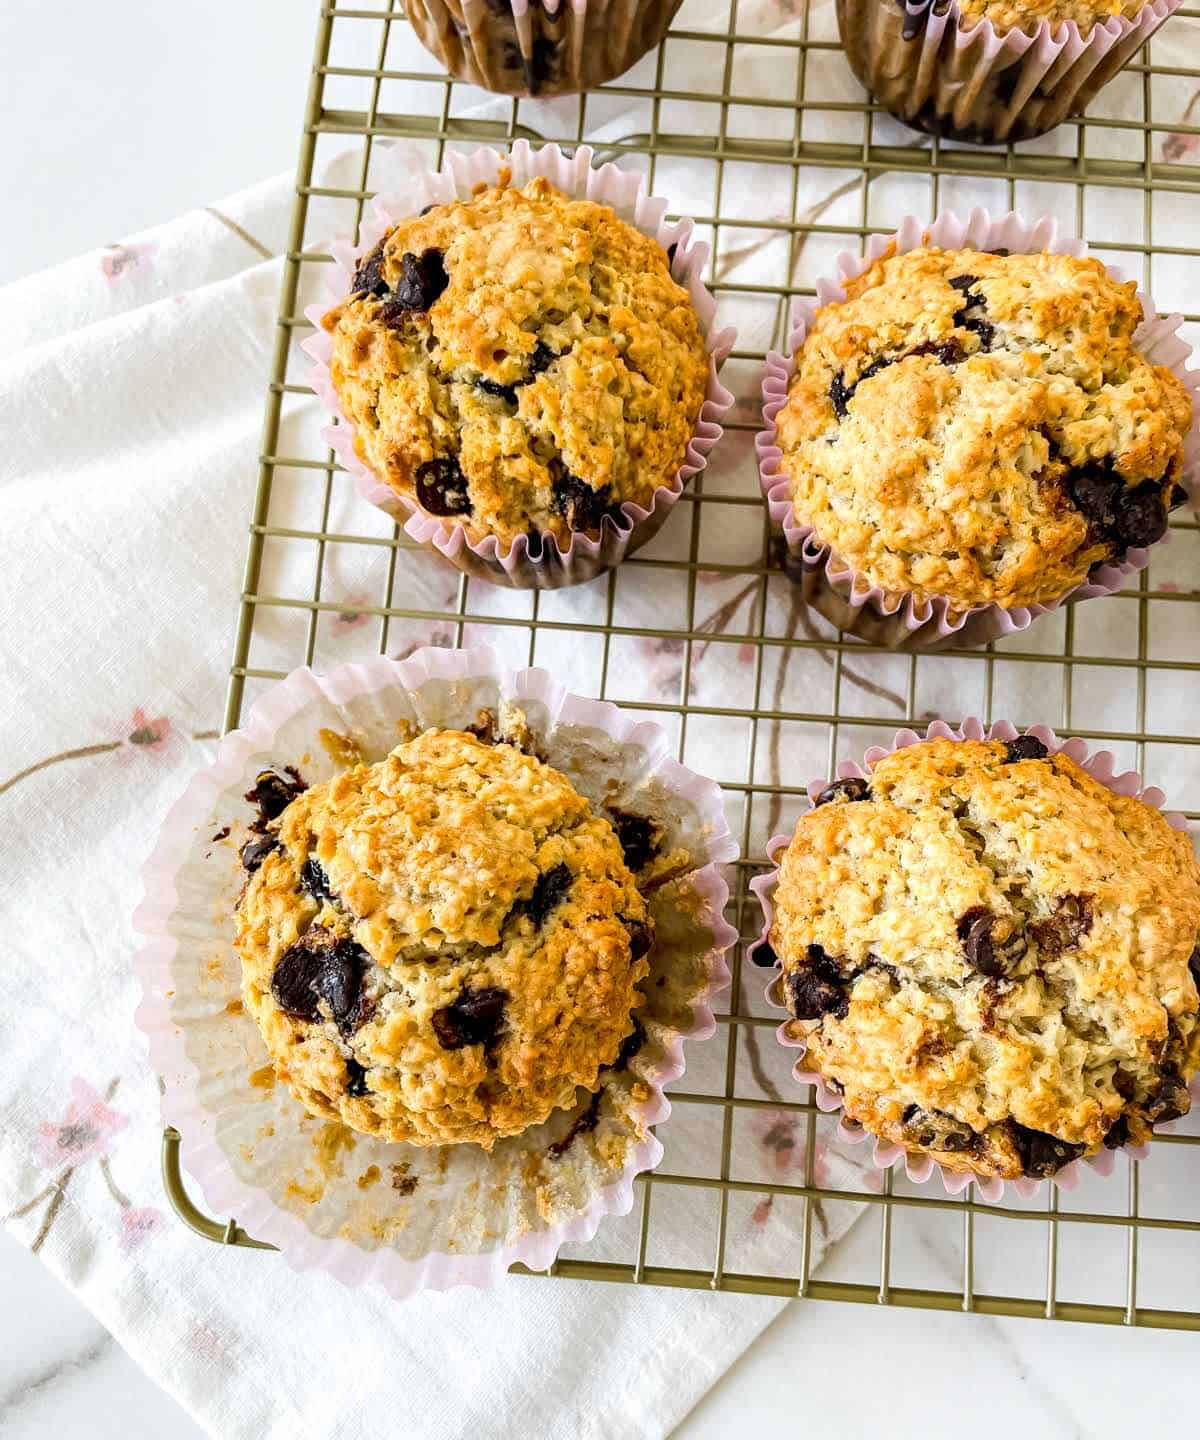 Four muffins with chips on wire rack, white kitchen towel